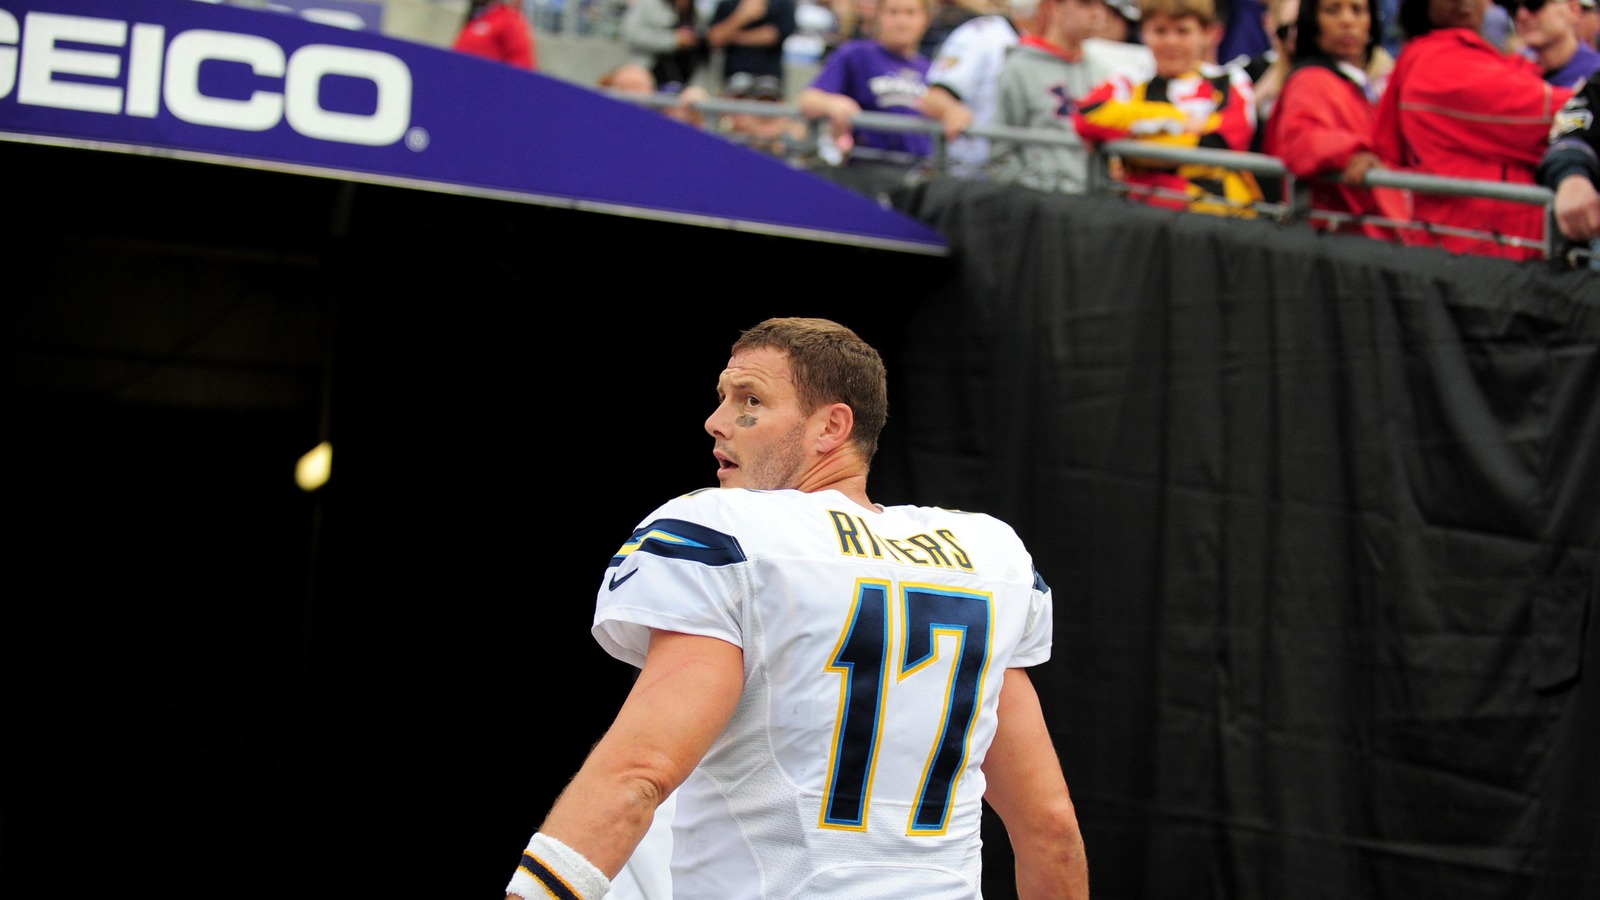 Chargers' Rivers set for another start despite flu bout